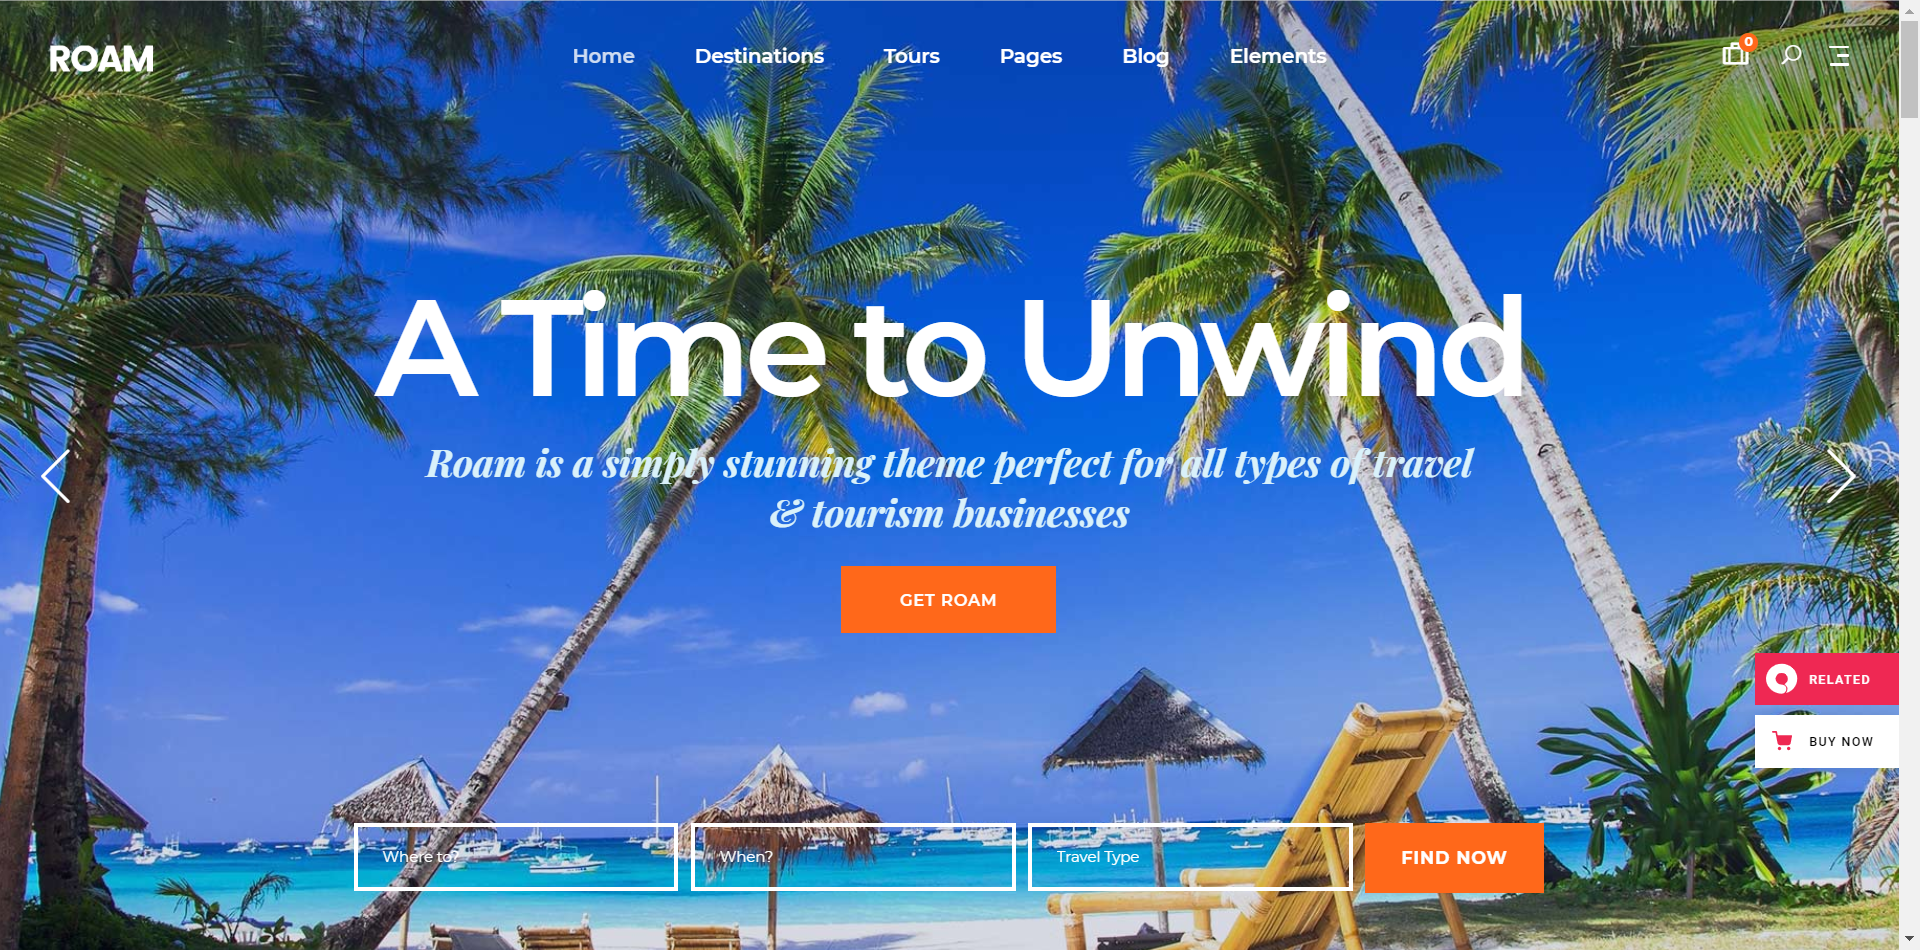 Roam Travel WordPress Theme Screenshot - A Time to Unwind Slider